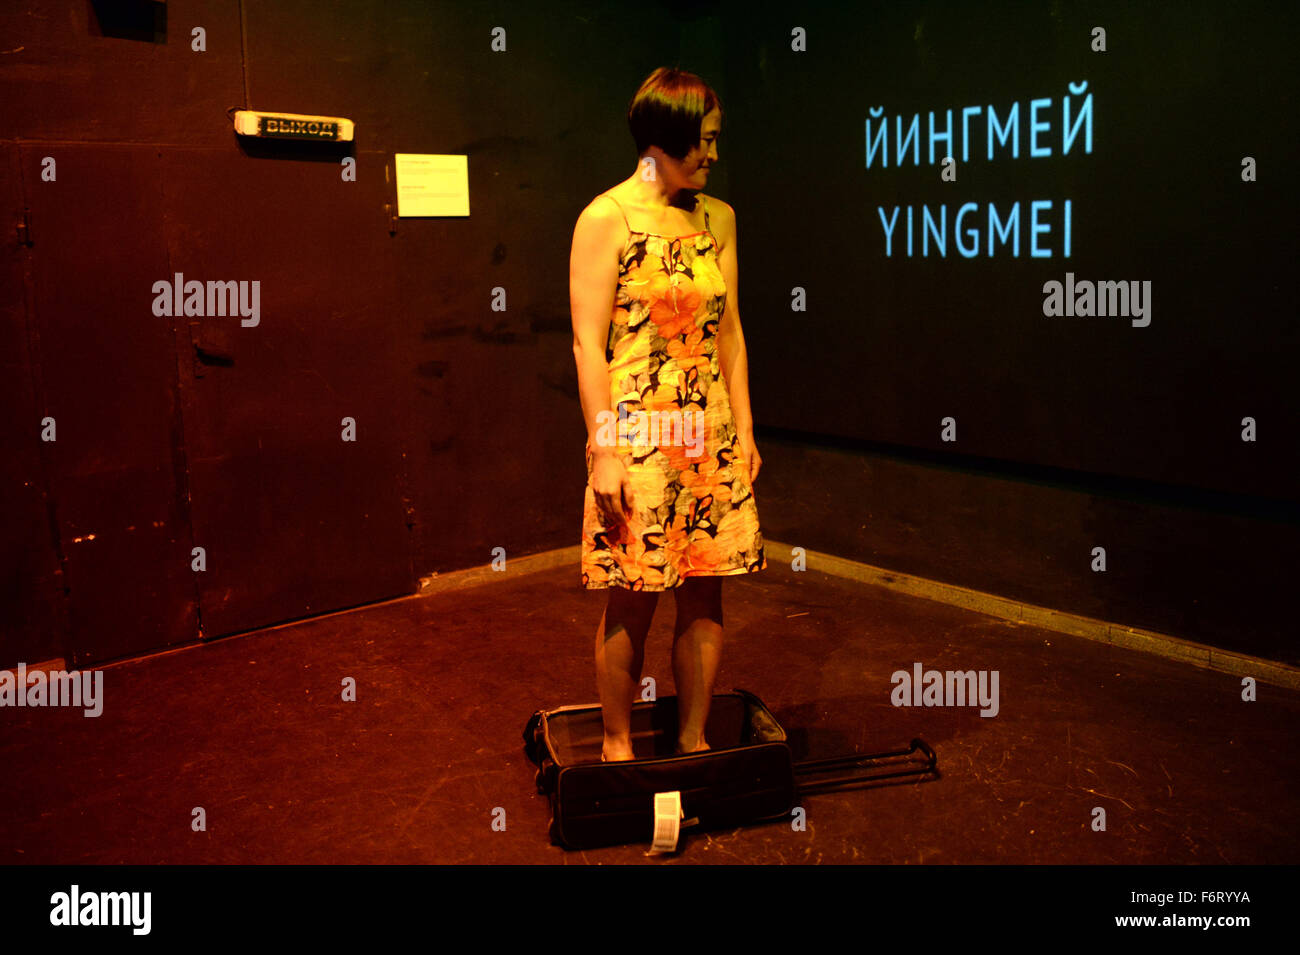 Moscow, Russia. 19th Nov, 2015. Chinese artist Duan Yingmei makes her live performance 'Behind The Door' - Stock Image